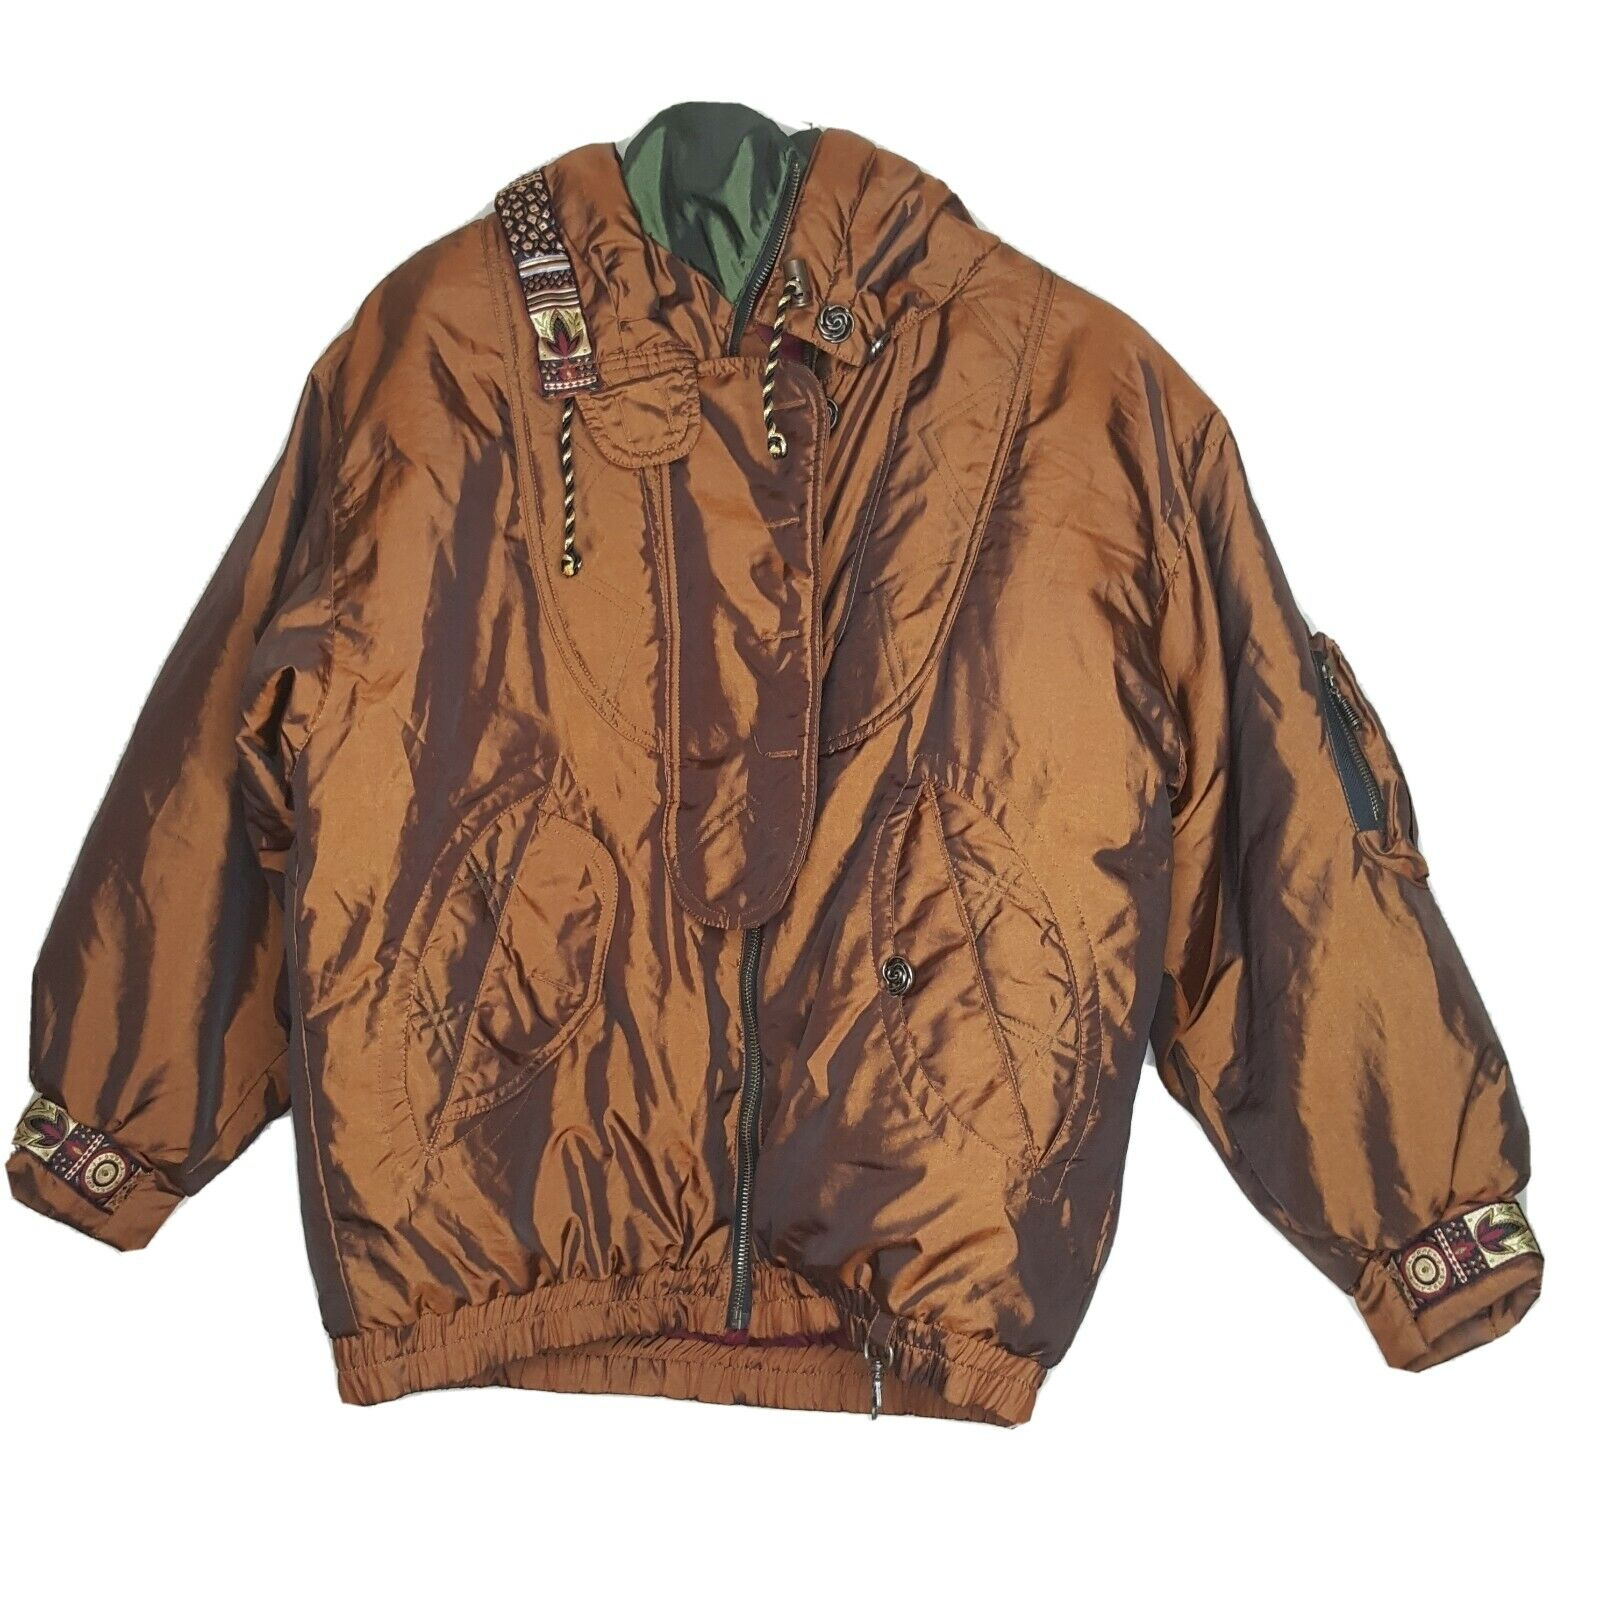 VTG 80s Coat Women Size XL Brown Gold Iridescent Insulated Jacket No Tags